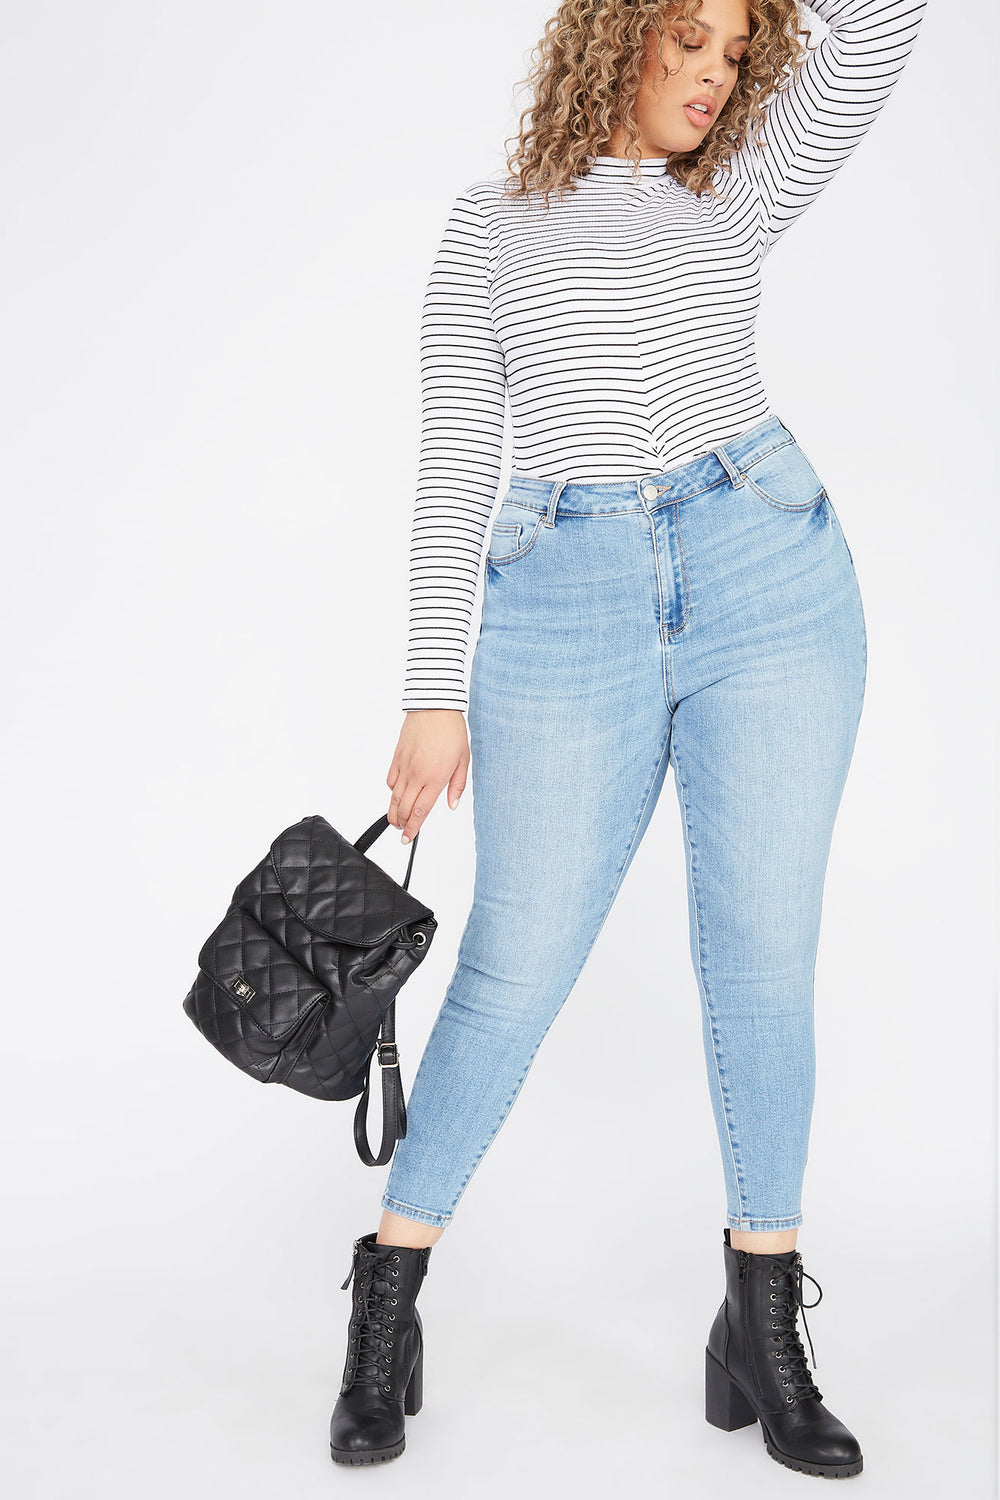 Plus Size Butt, I Love You High-Rise Push-Up Skinny Jean Light Denim Blue